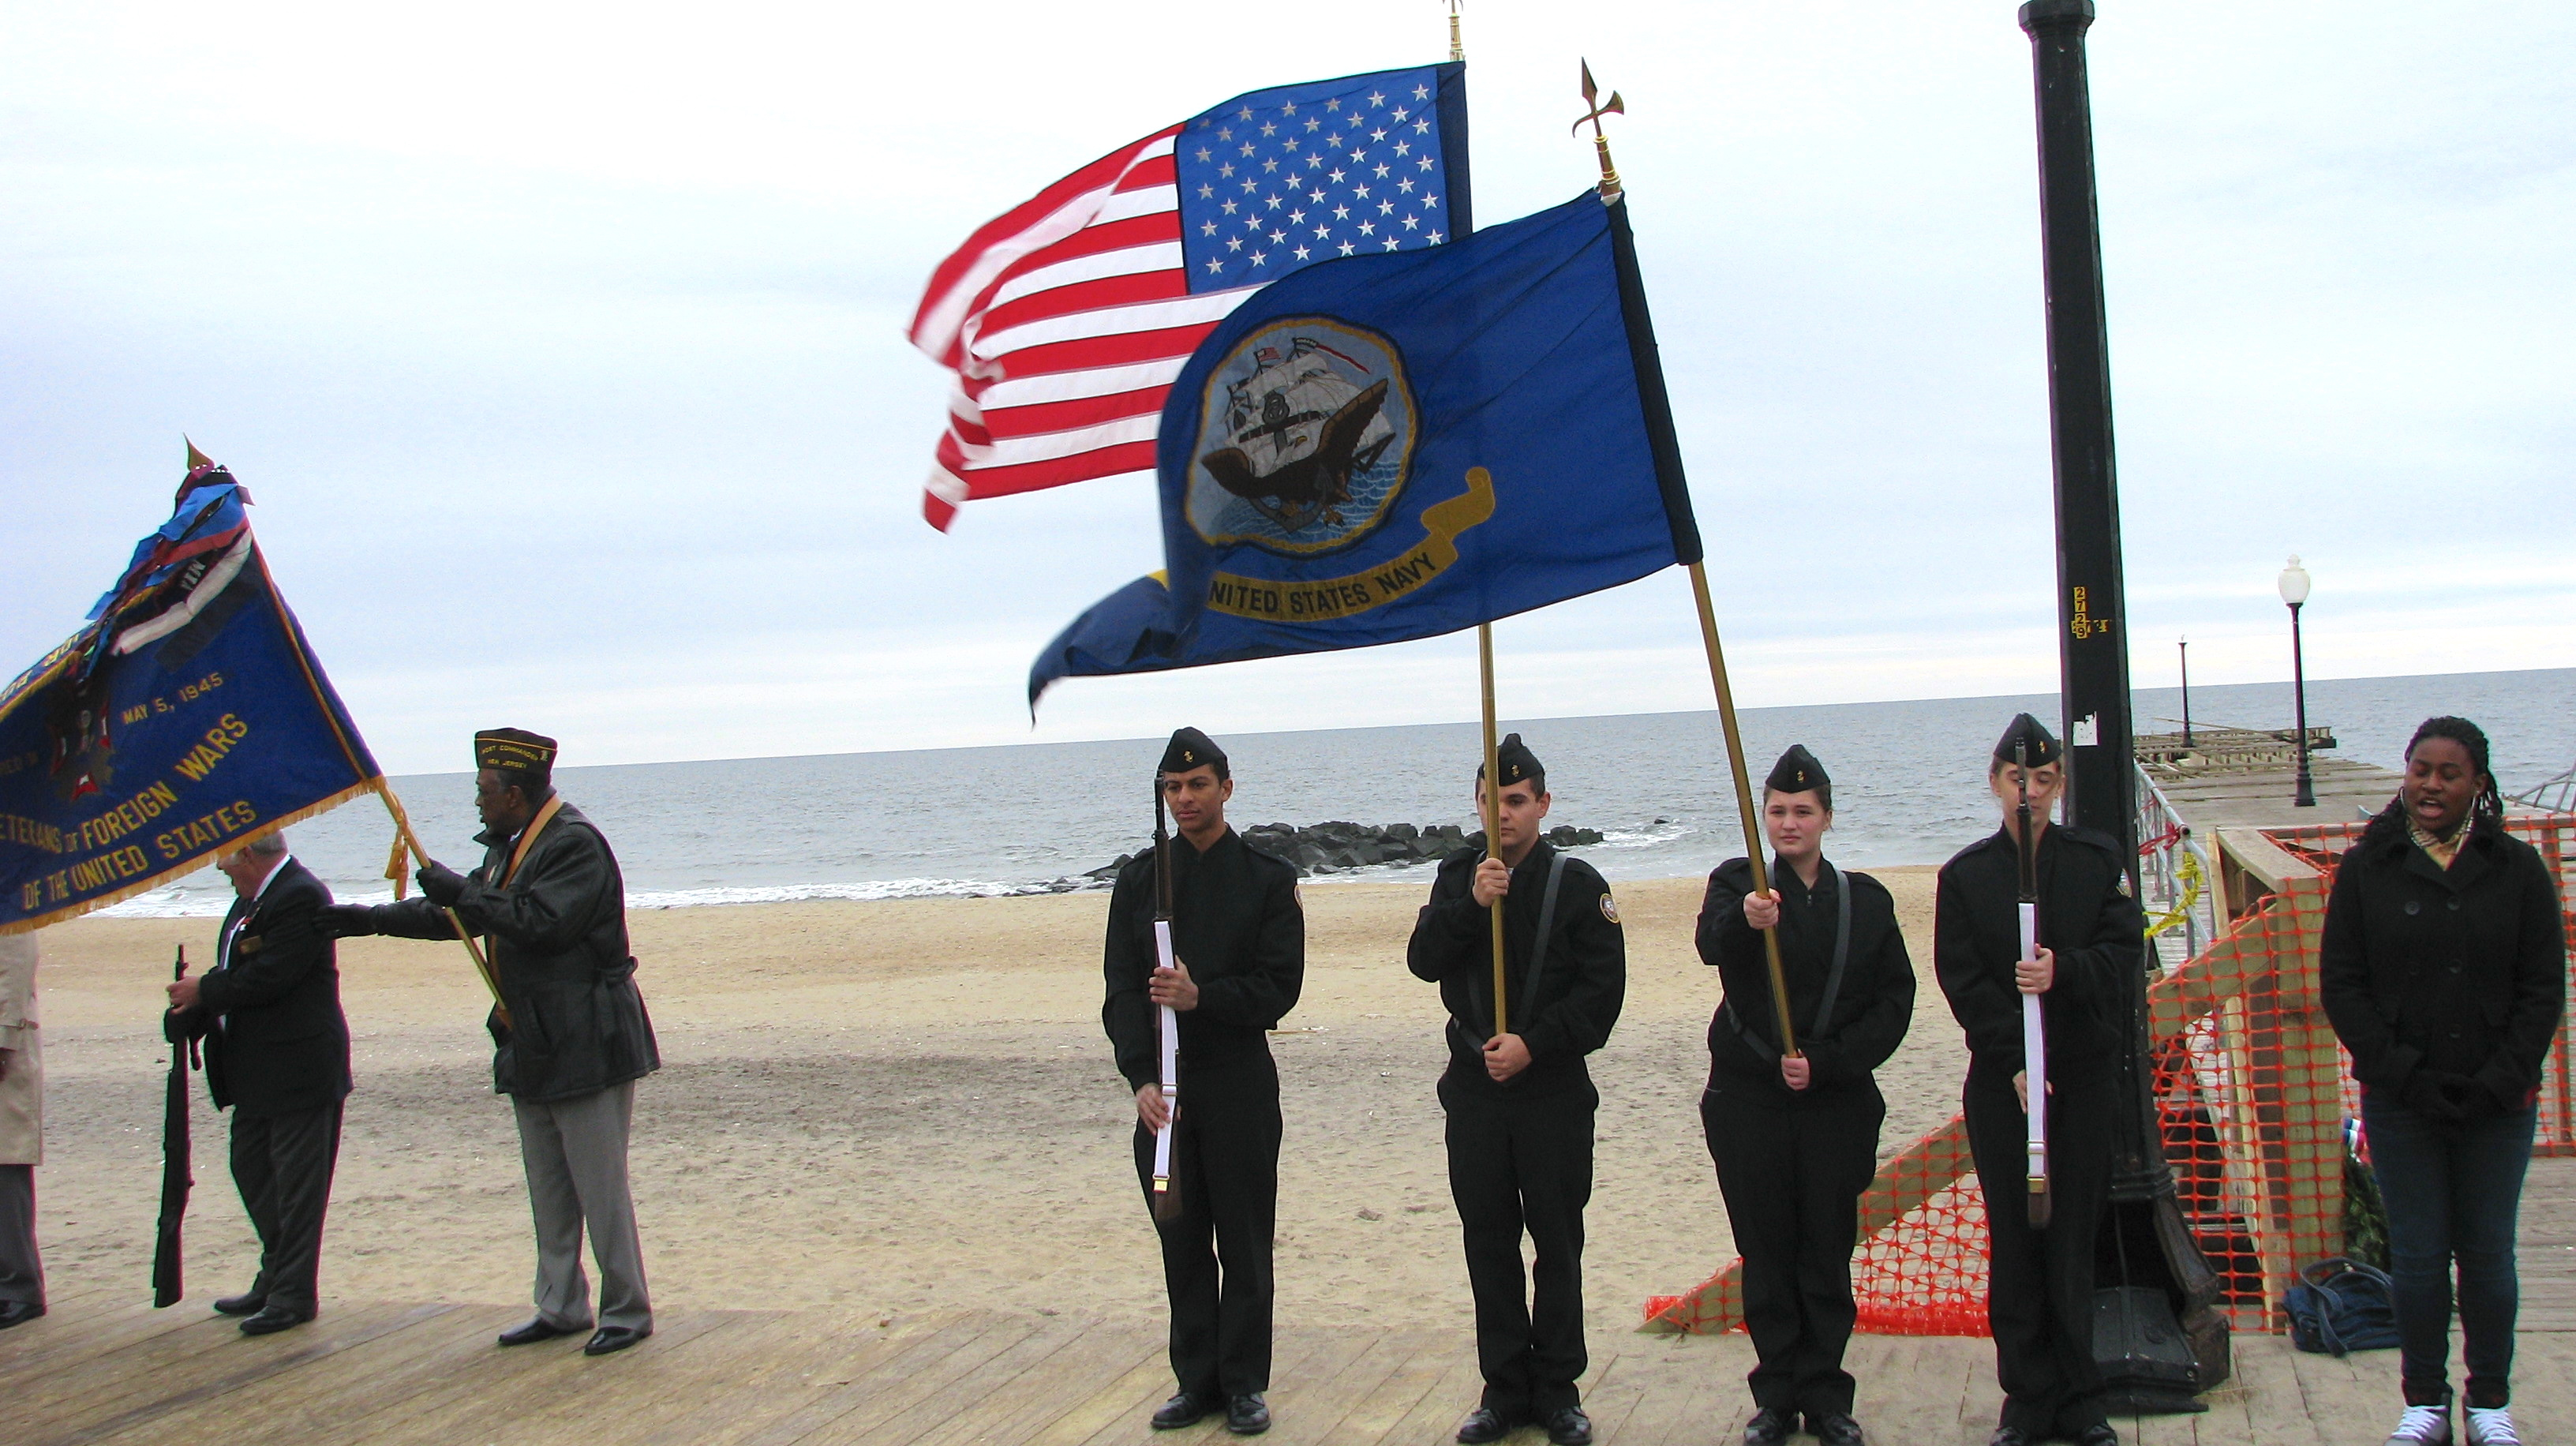 Pearl Harbor Day in Ocean Grove, NJ.  Photo by Jane Killilea. Left click for full view